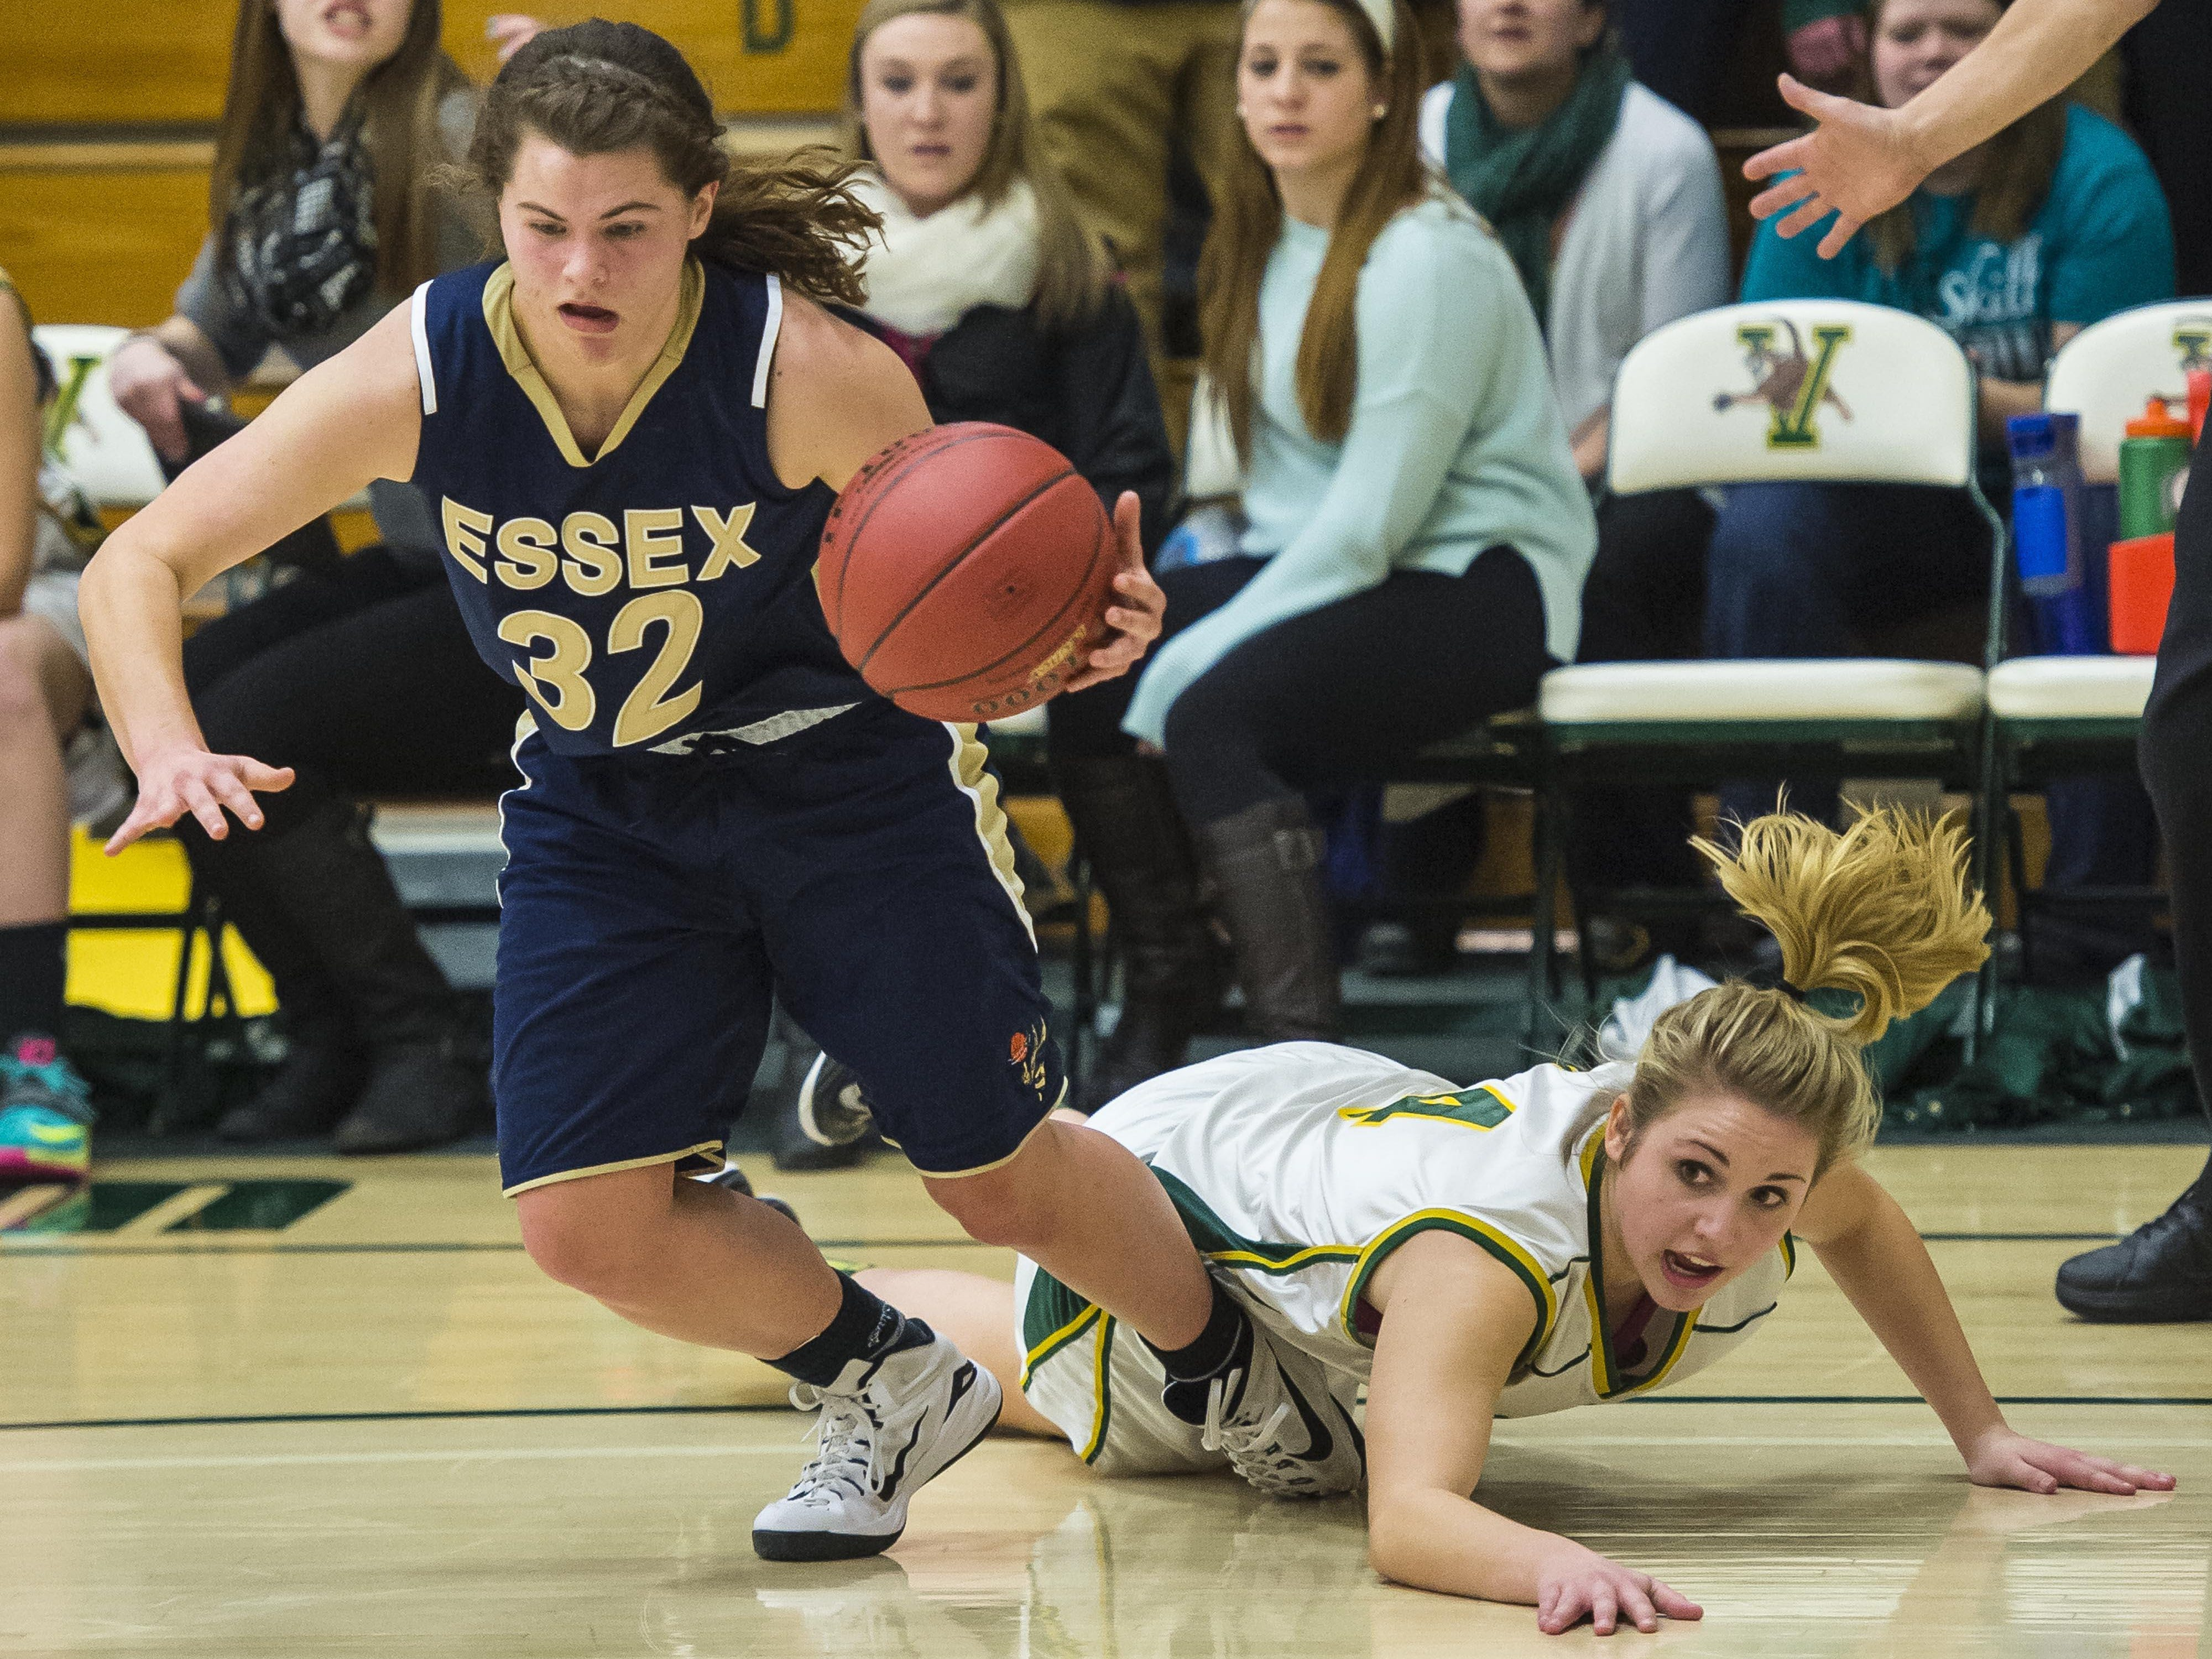 Essex's Mychaela Harton (left) evades pressure from BFA's Jillian Berno during the Division I high school girls basketball semifinals last year.